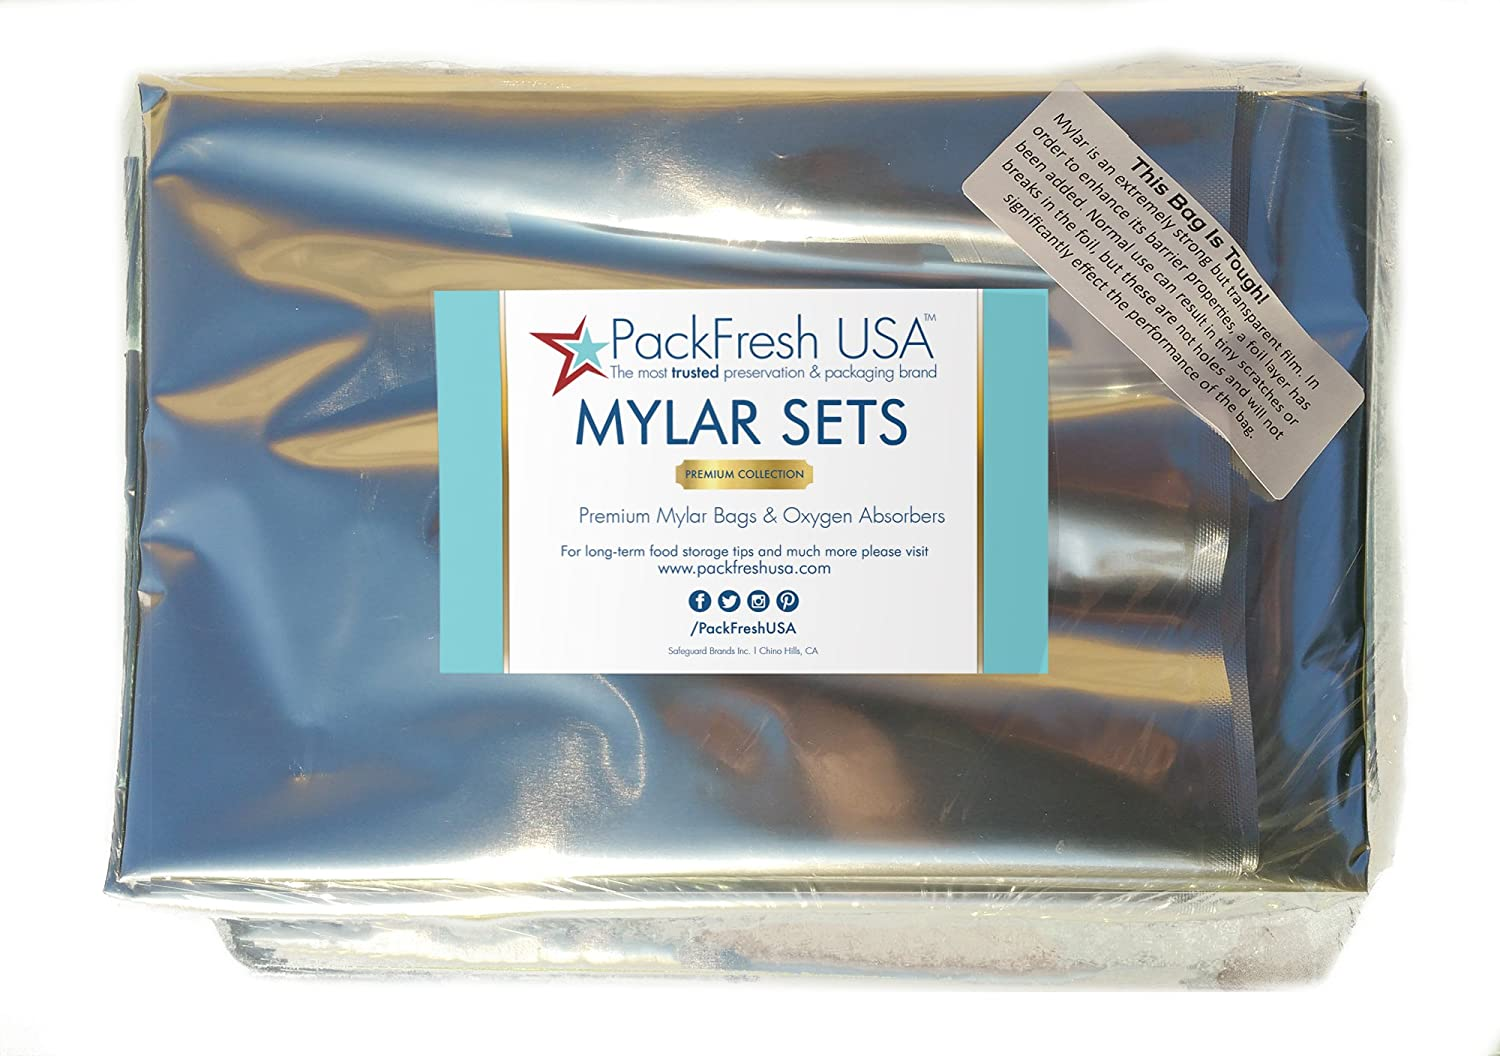 6 5 Gallon HD Ziplock Mylar bags with 2000cc Oxygen Absorbers Individually Sealed with PackFreshUSA LTFS Guide